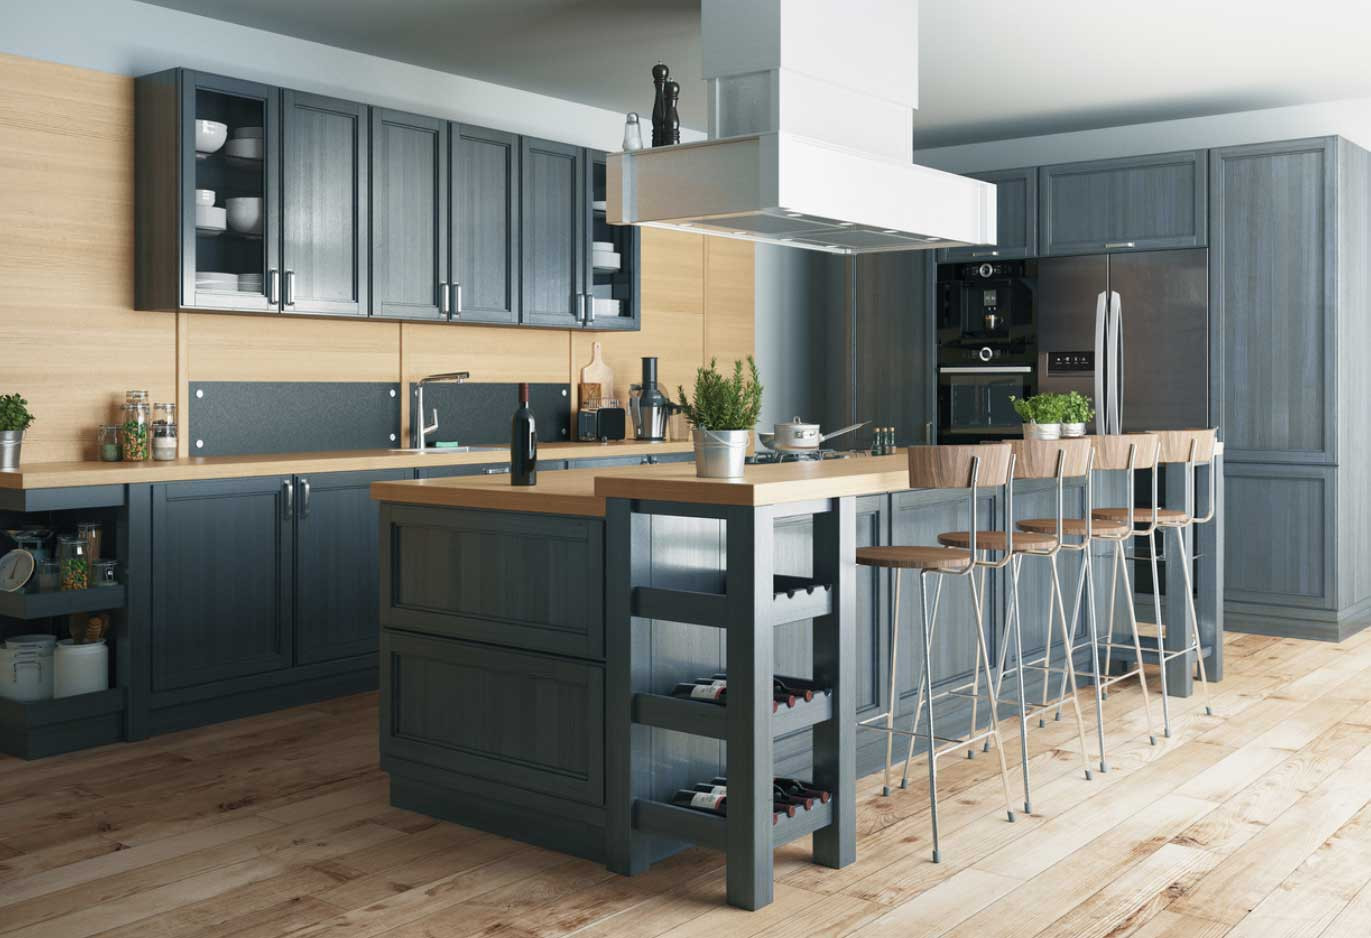 Top 20 Kitchen Design Software That Will Make Designing Easy